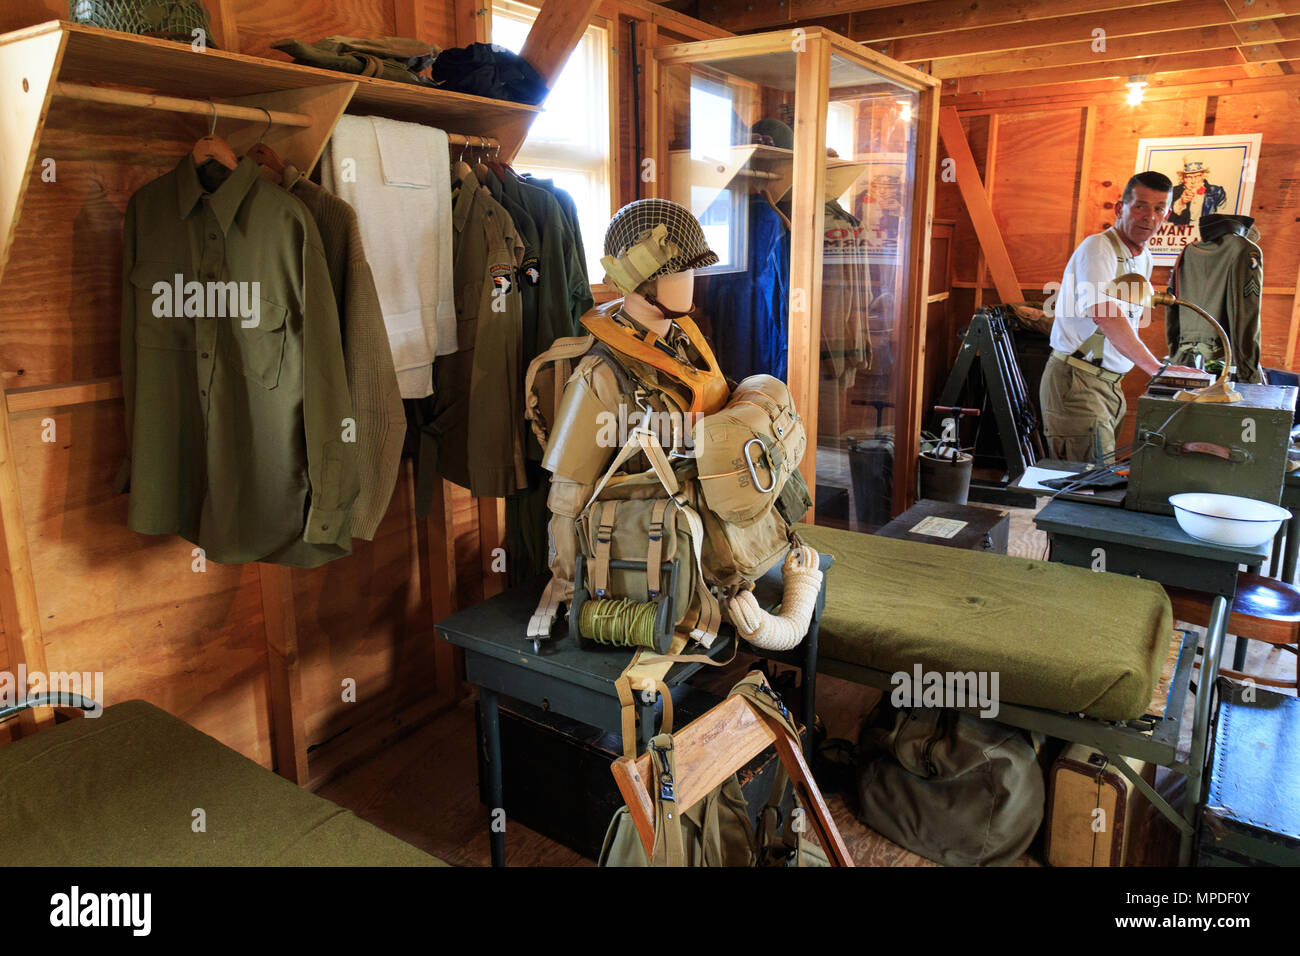 Carlisle, PA, USA - May 20, 2018: WWII Army barracks were recreated